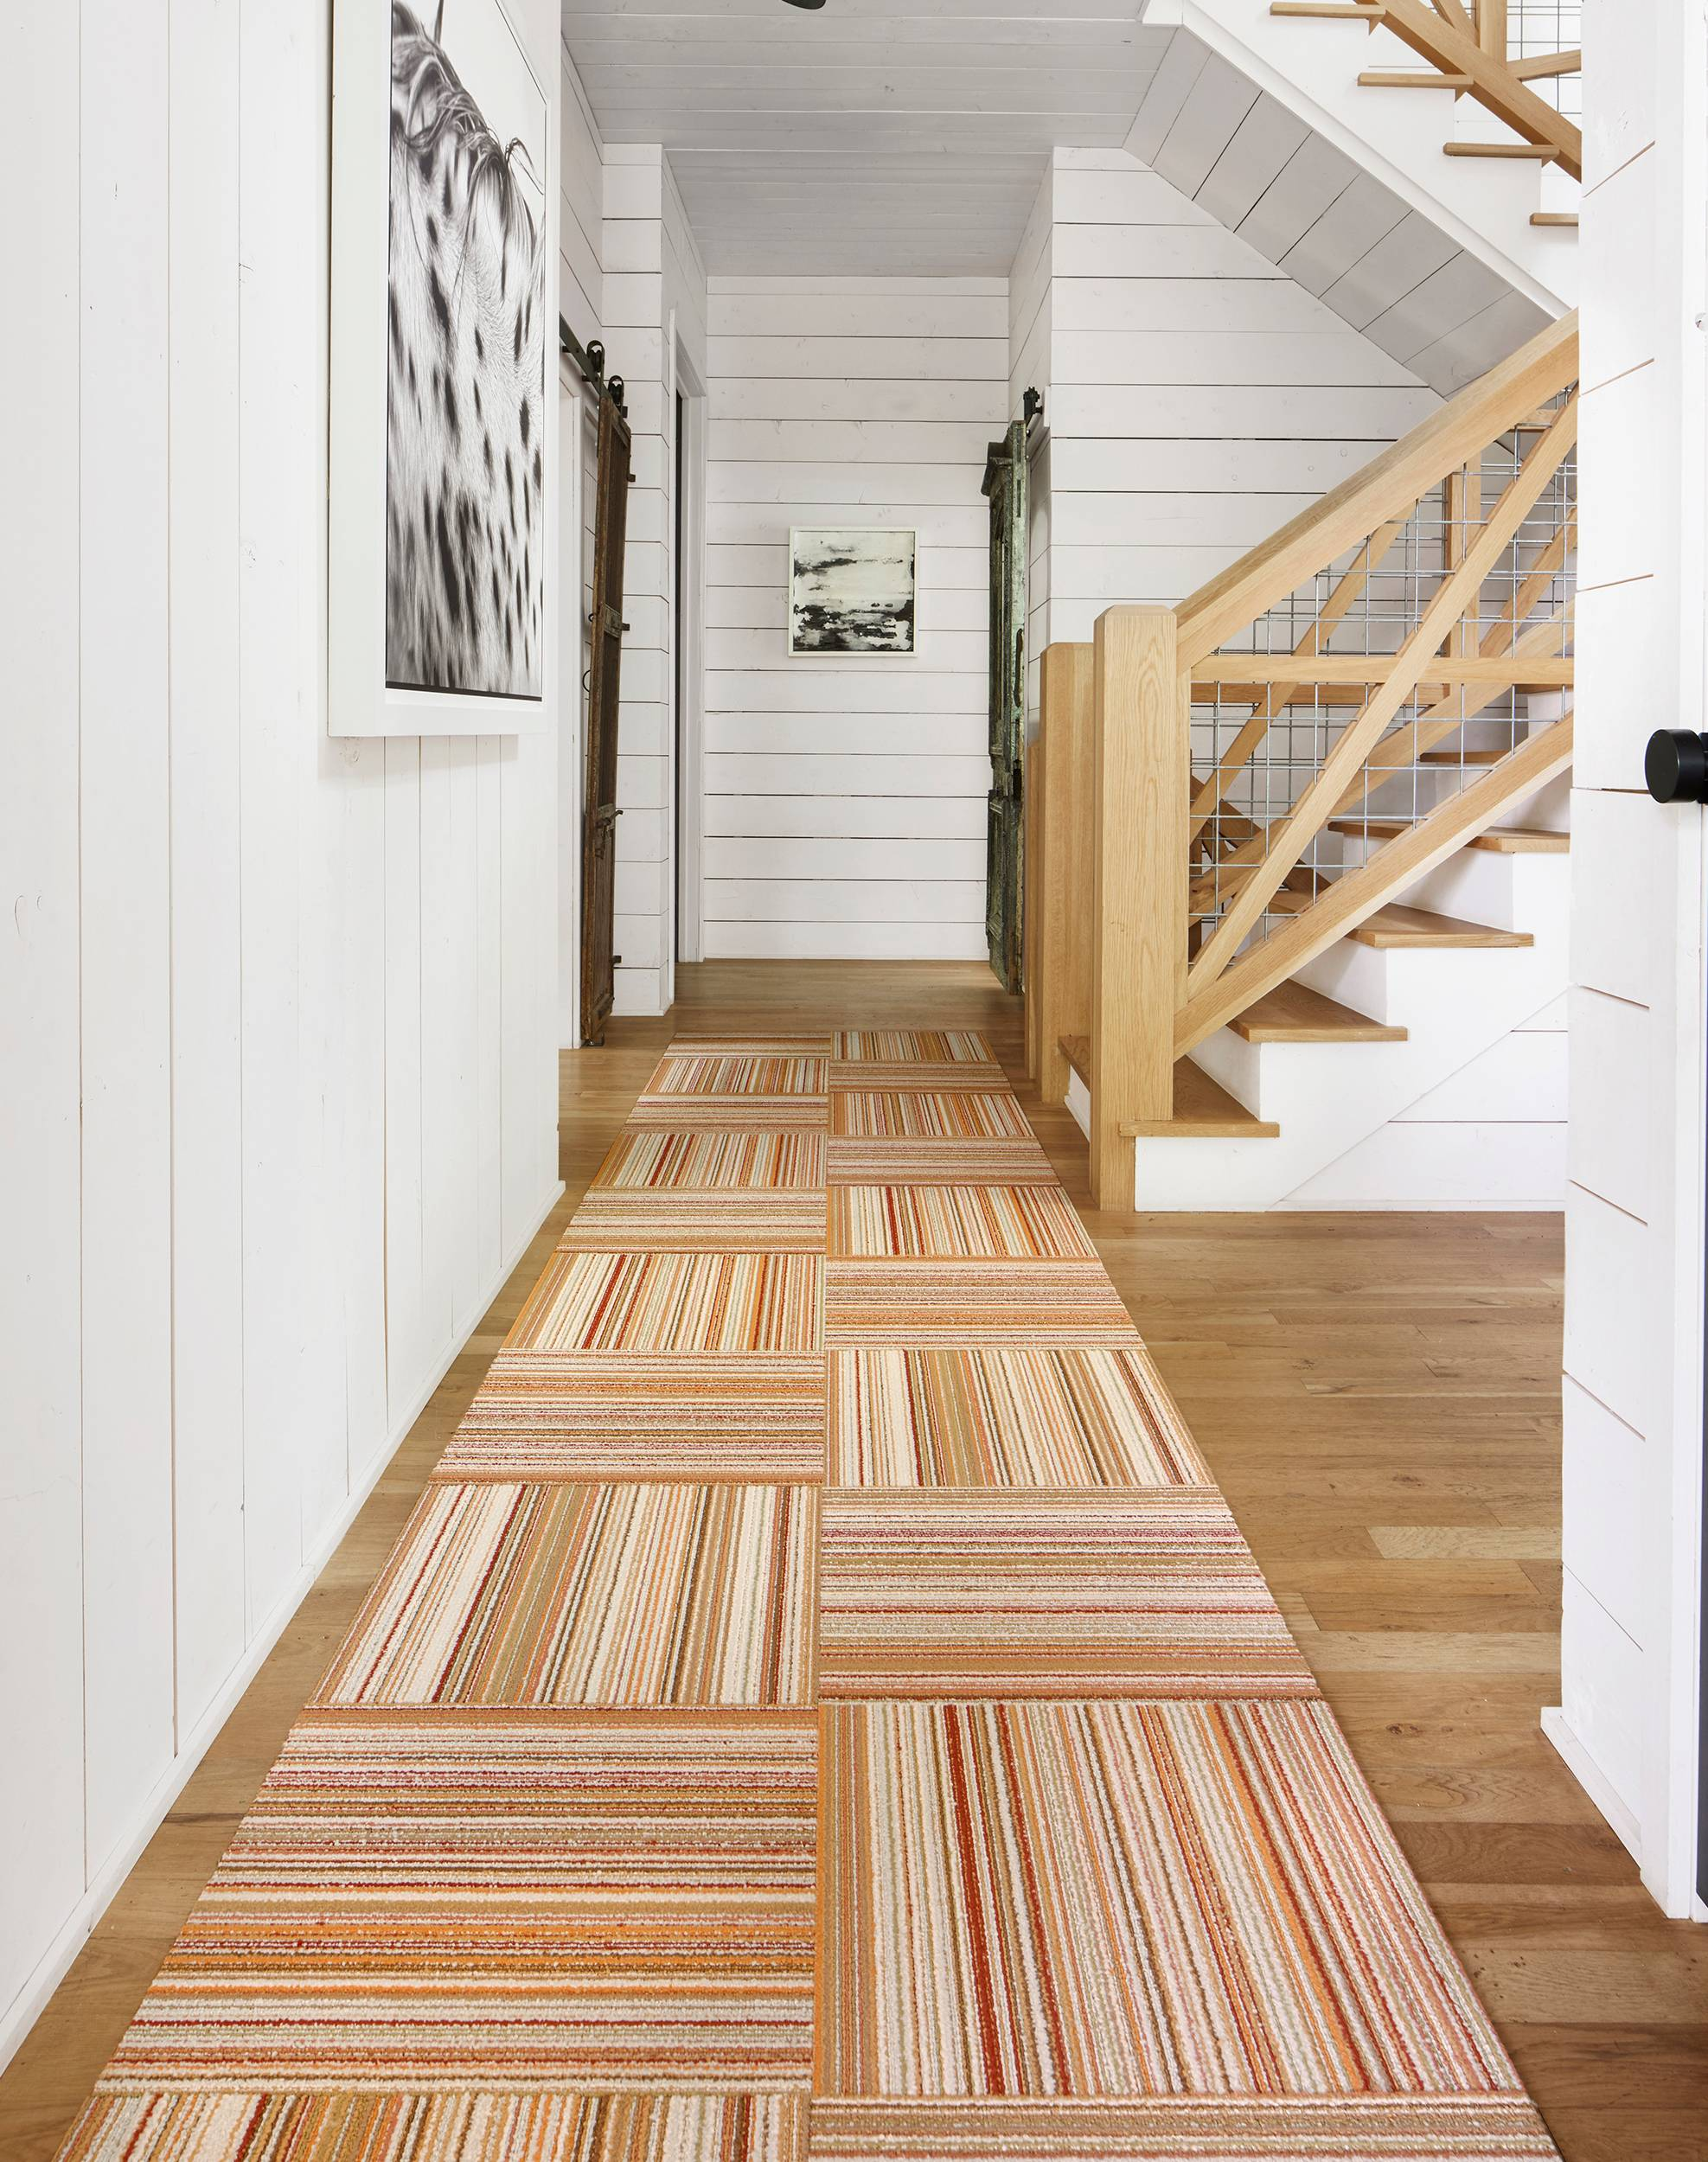 Rustic staircase and hallway